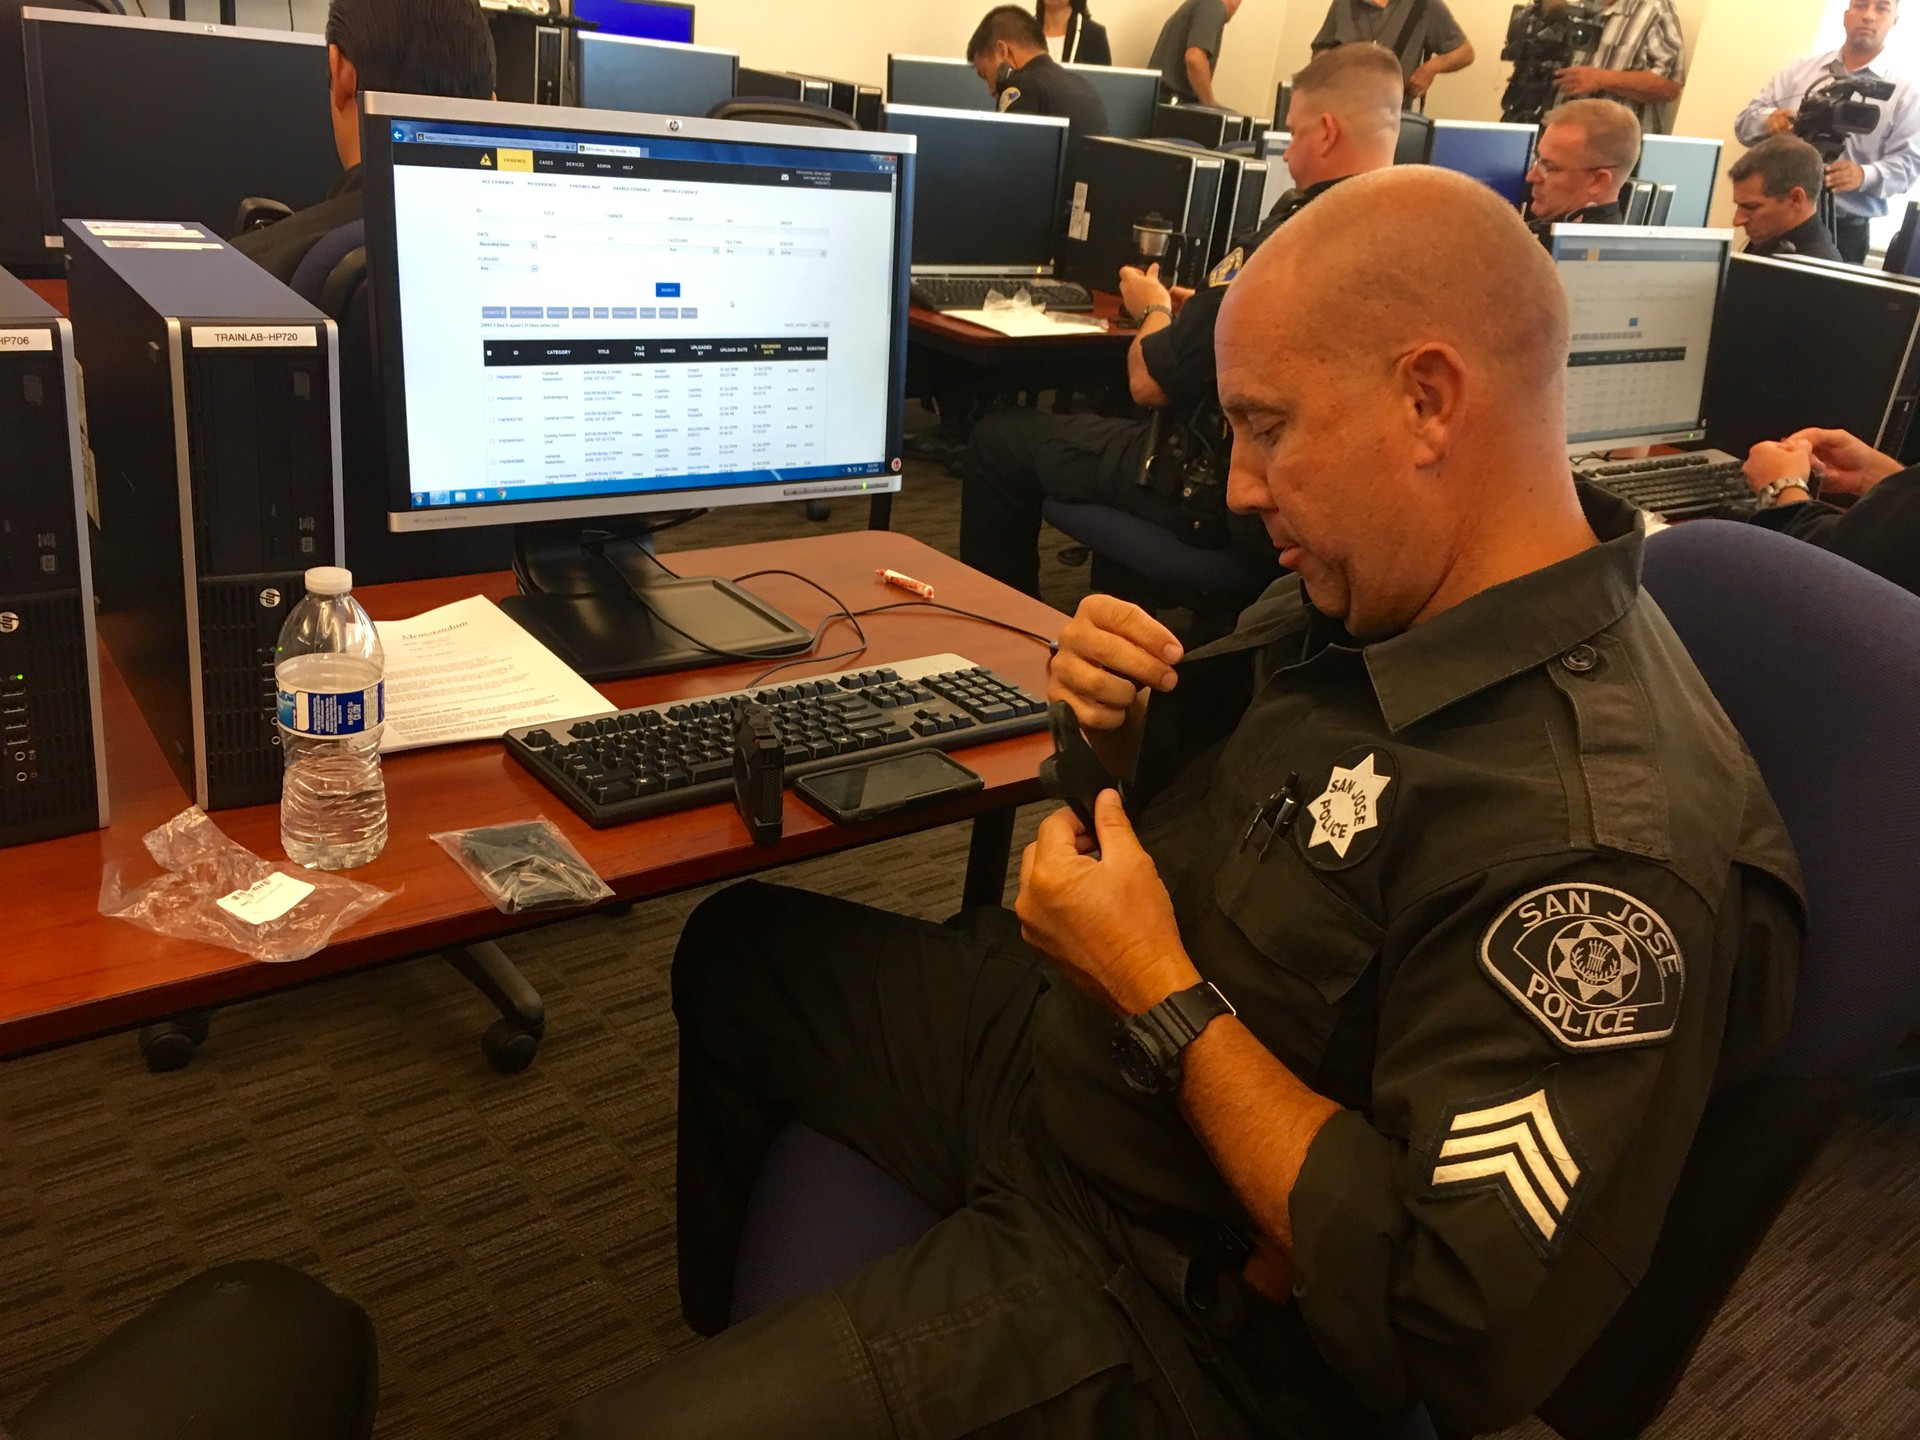 Sgt. Sean Pritchard who works in San Jose Police Department's gang unit, attaches his body worn camera during a four hour training session.